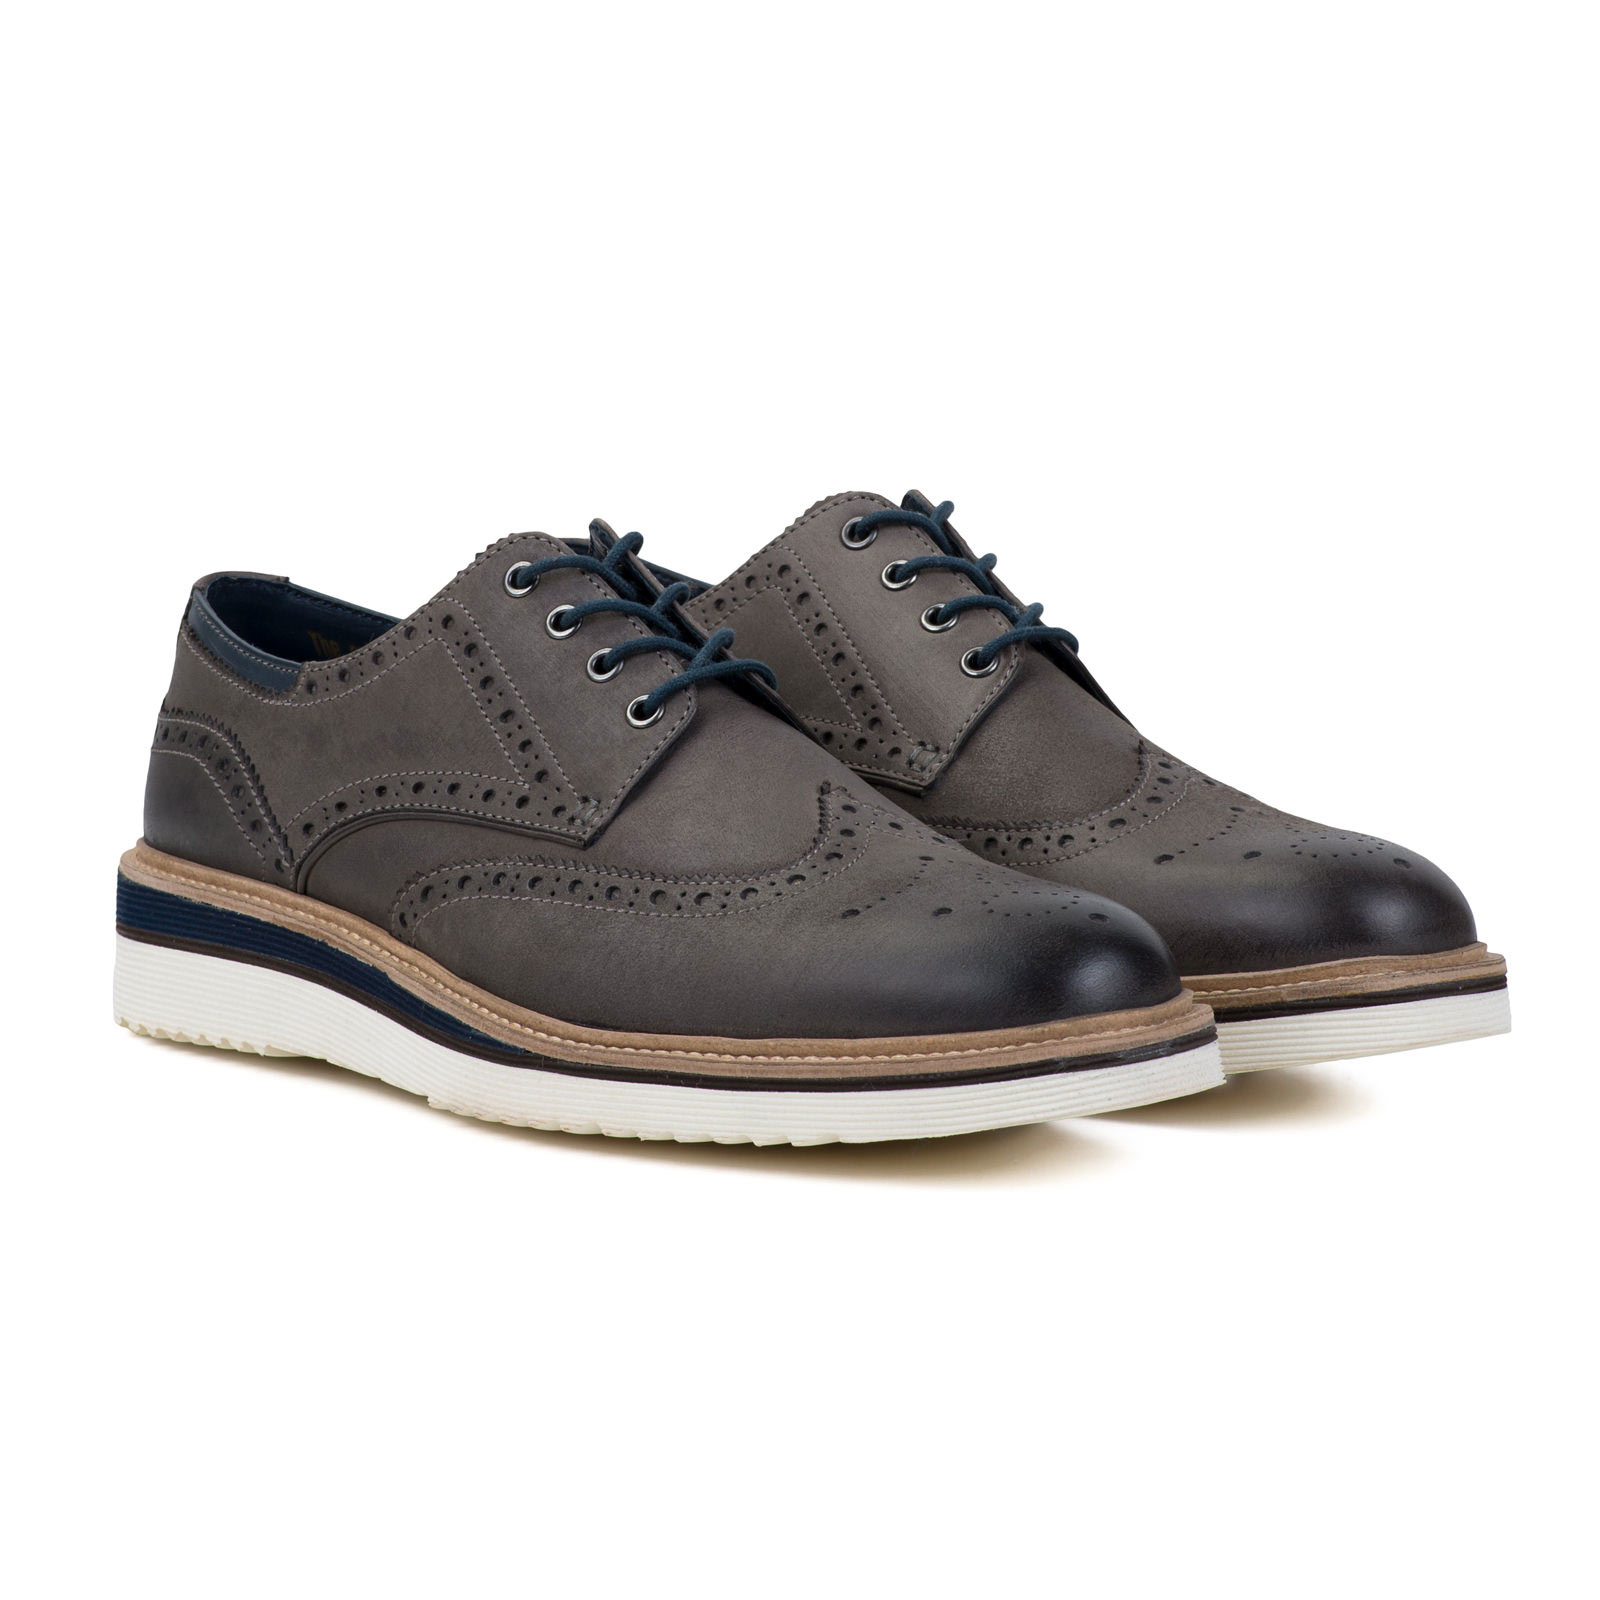 Goodwin Smith Grau Newton XL Keil Derby Grau Smith Herren Brogue Halbschuhe alle Größen 200cbd